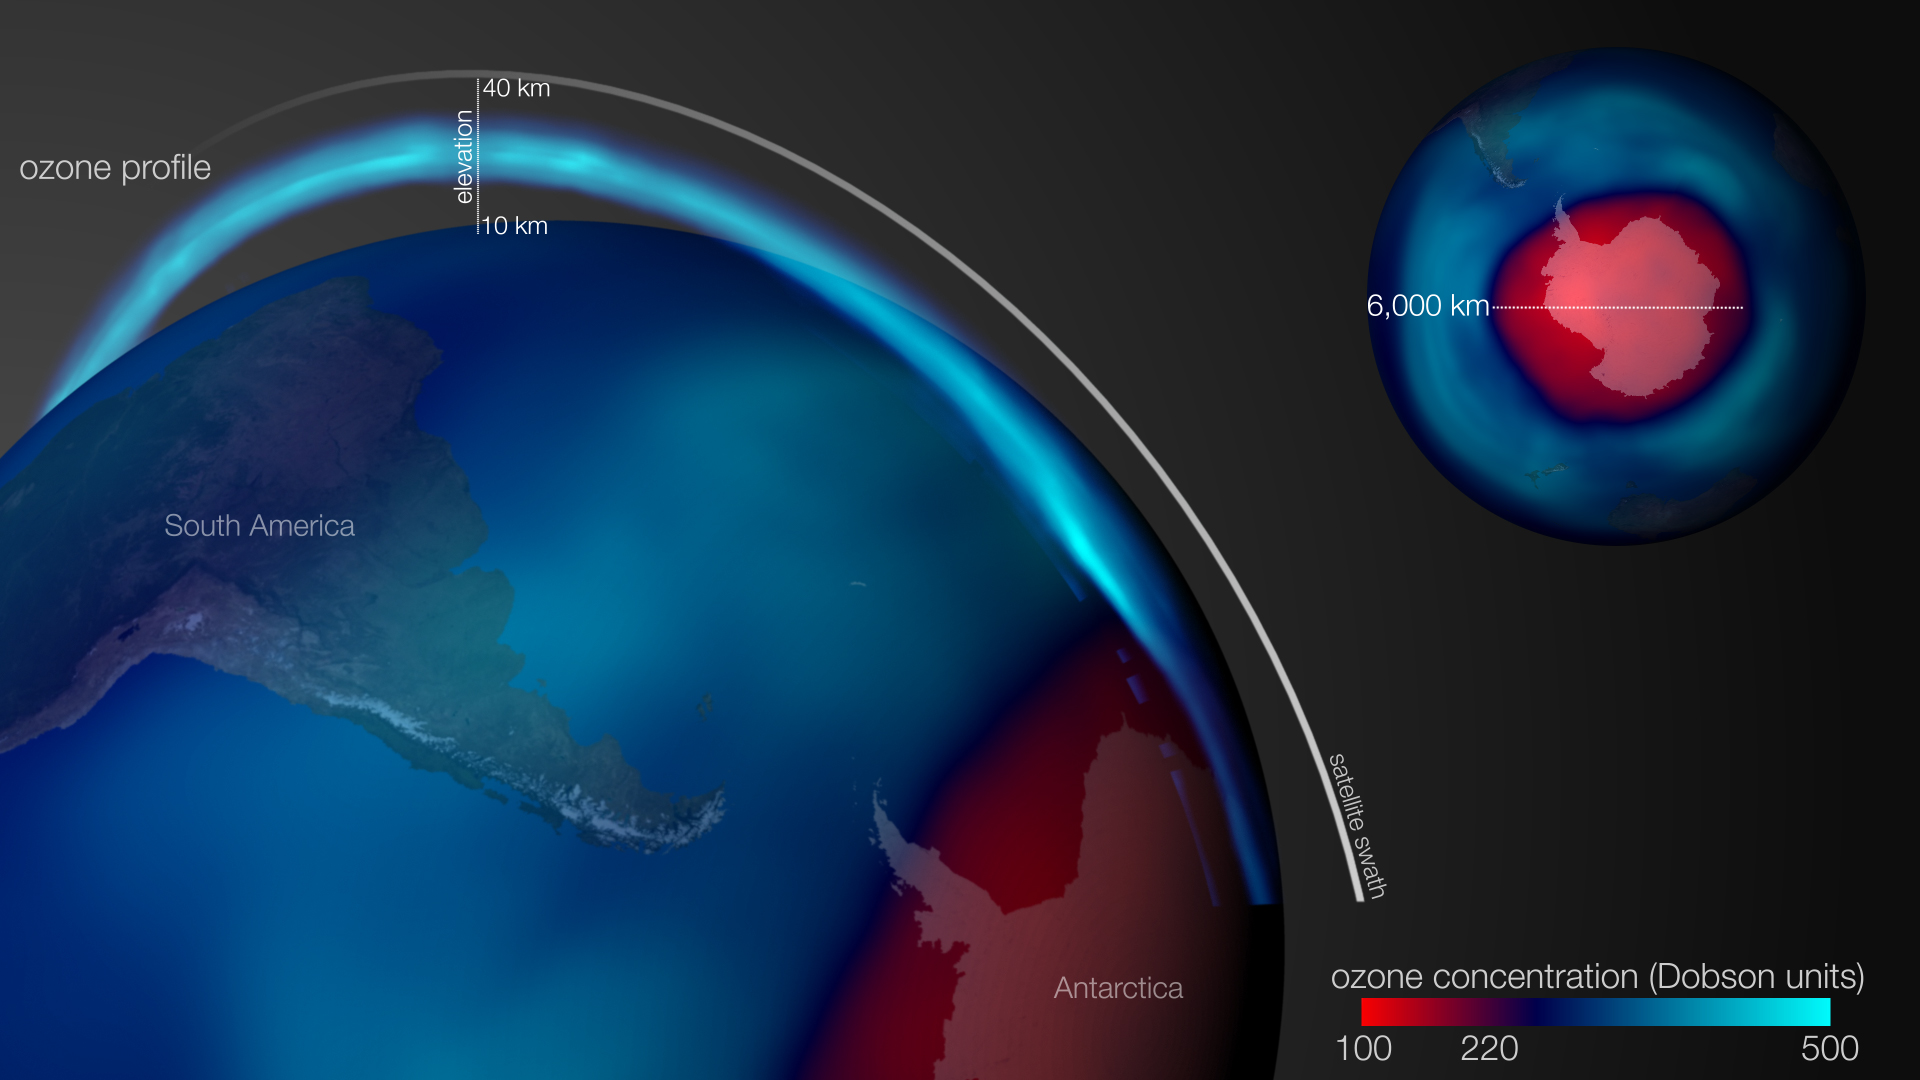 Ozone hole dynamics in recent years